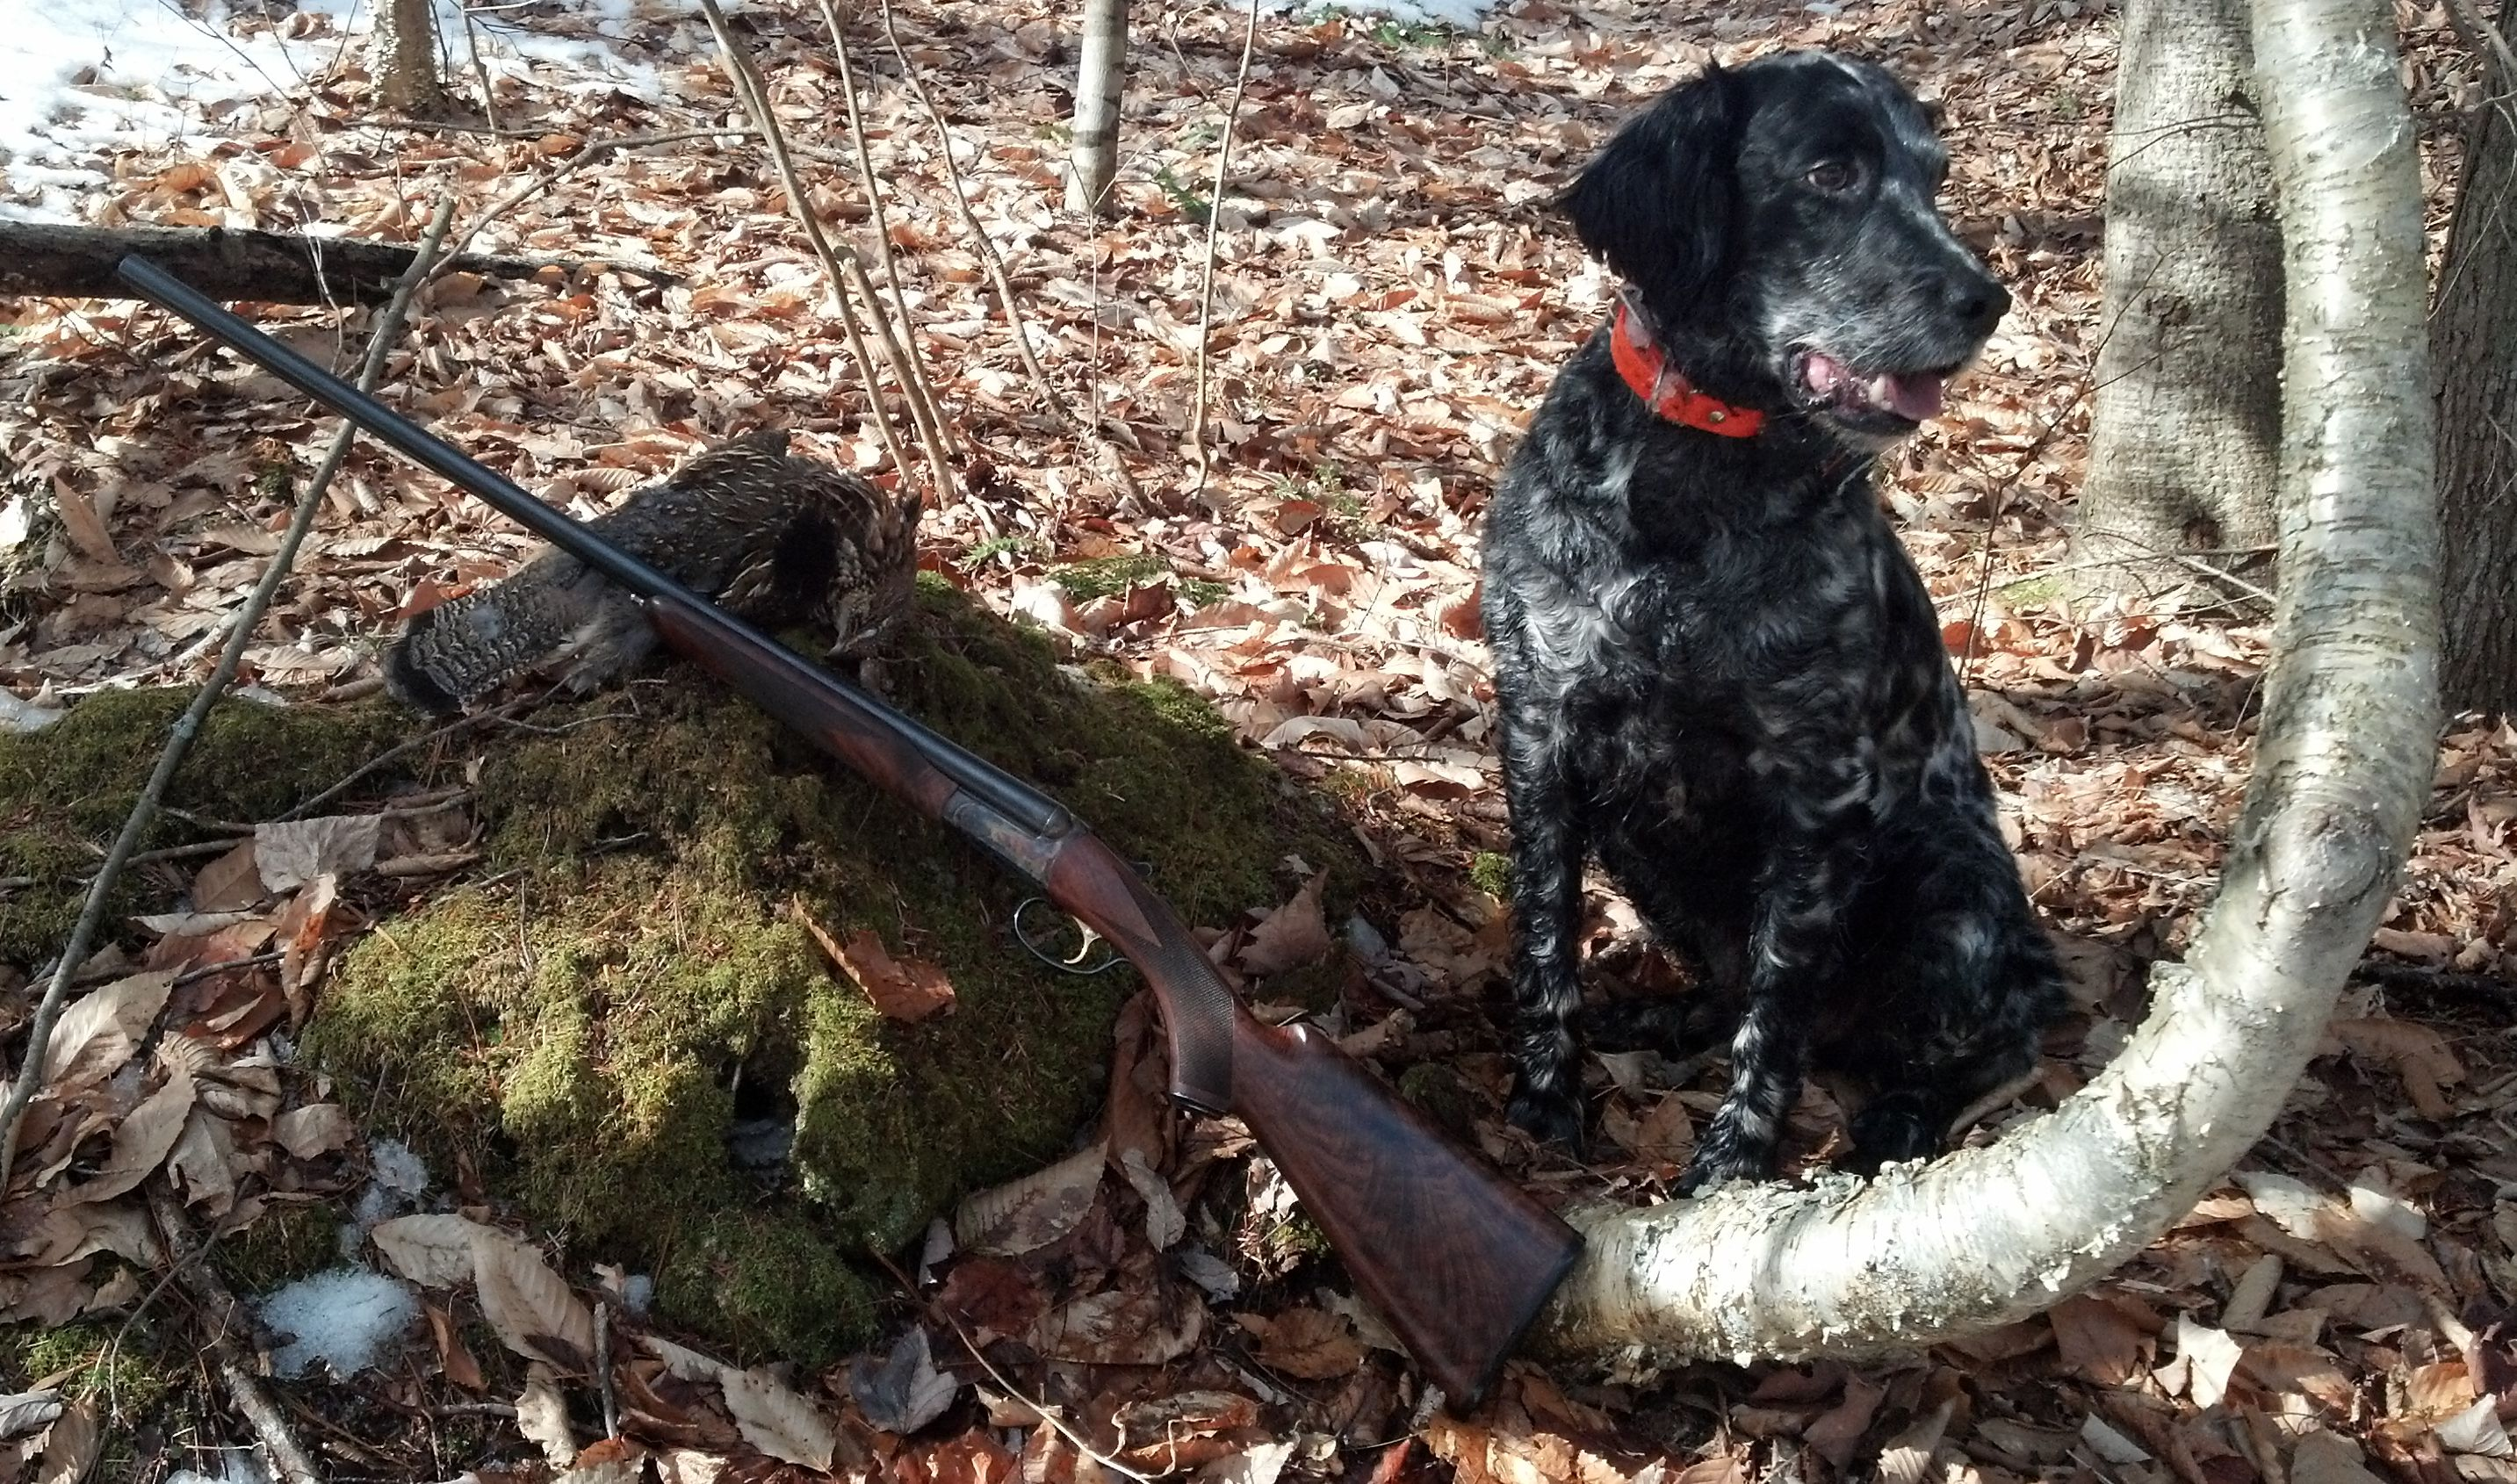 Bird, Dog & Shotgun........Doesn't get much better!